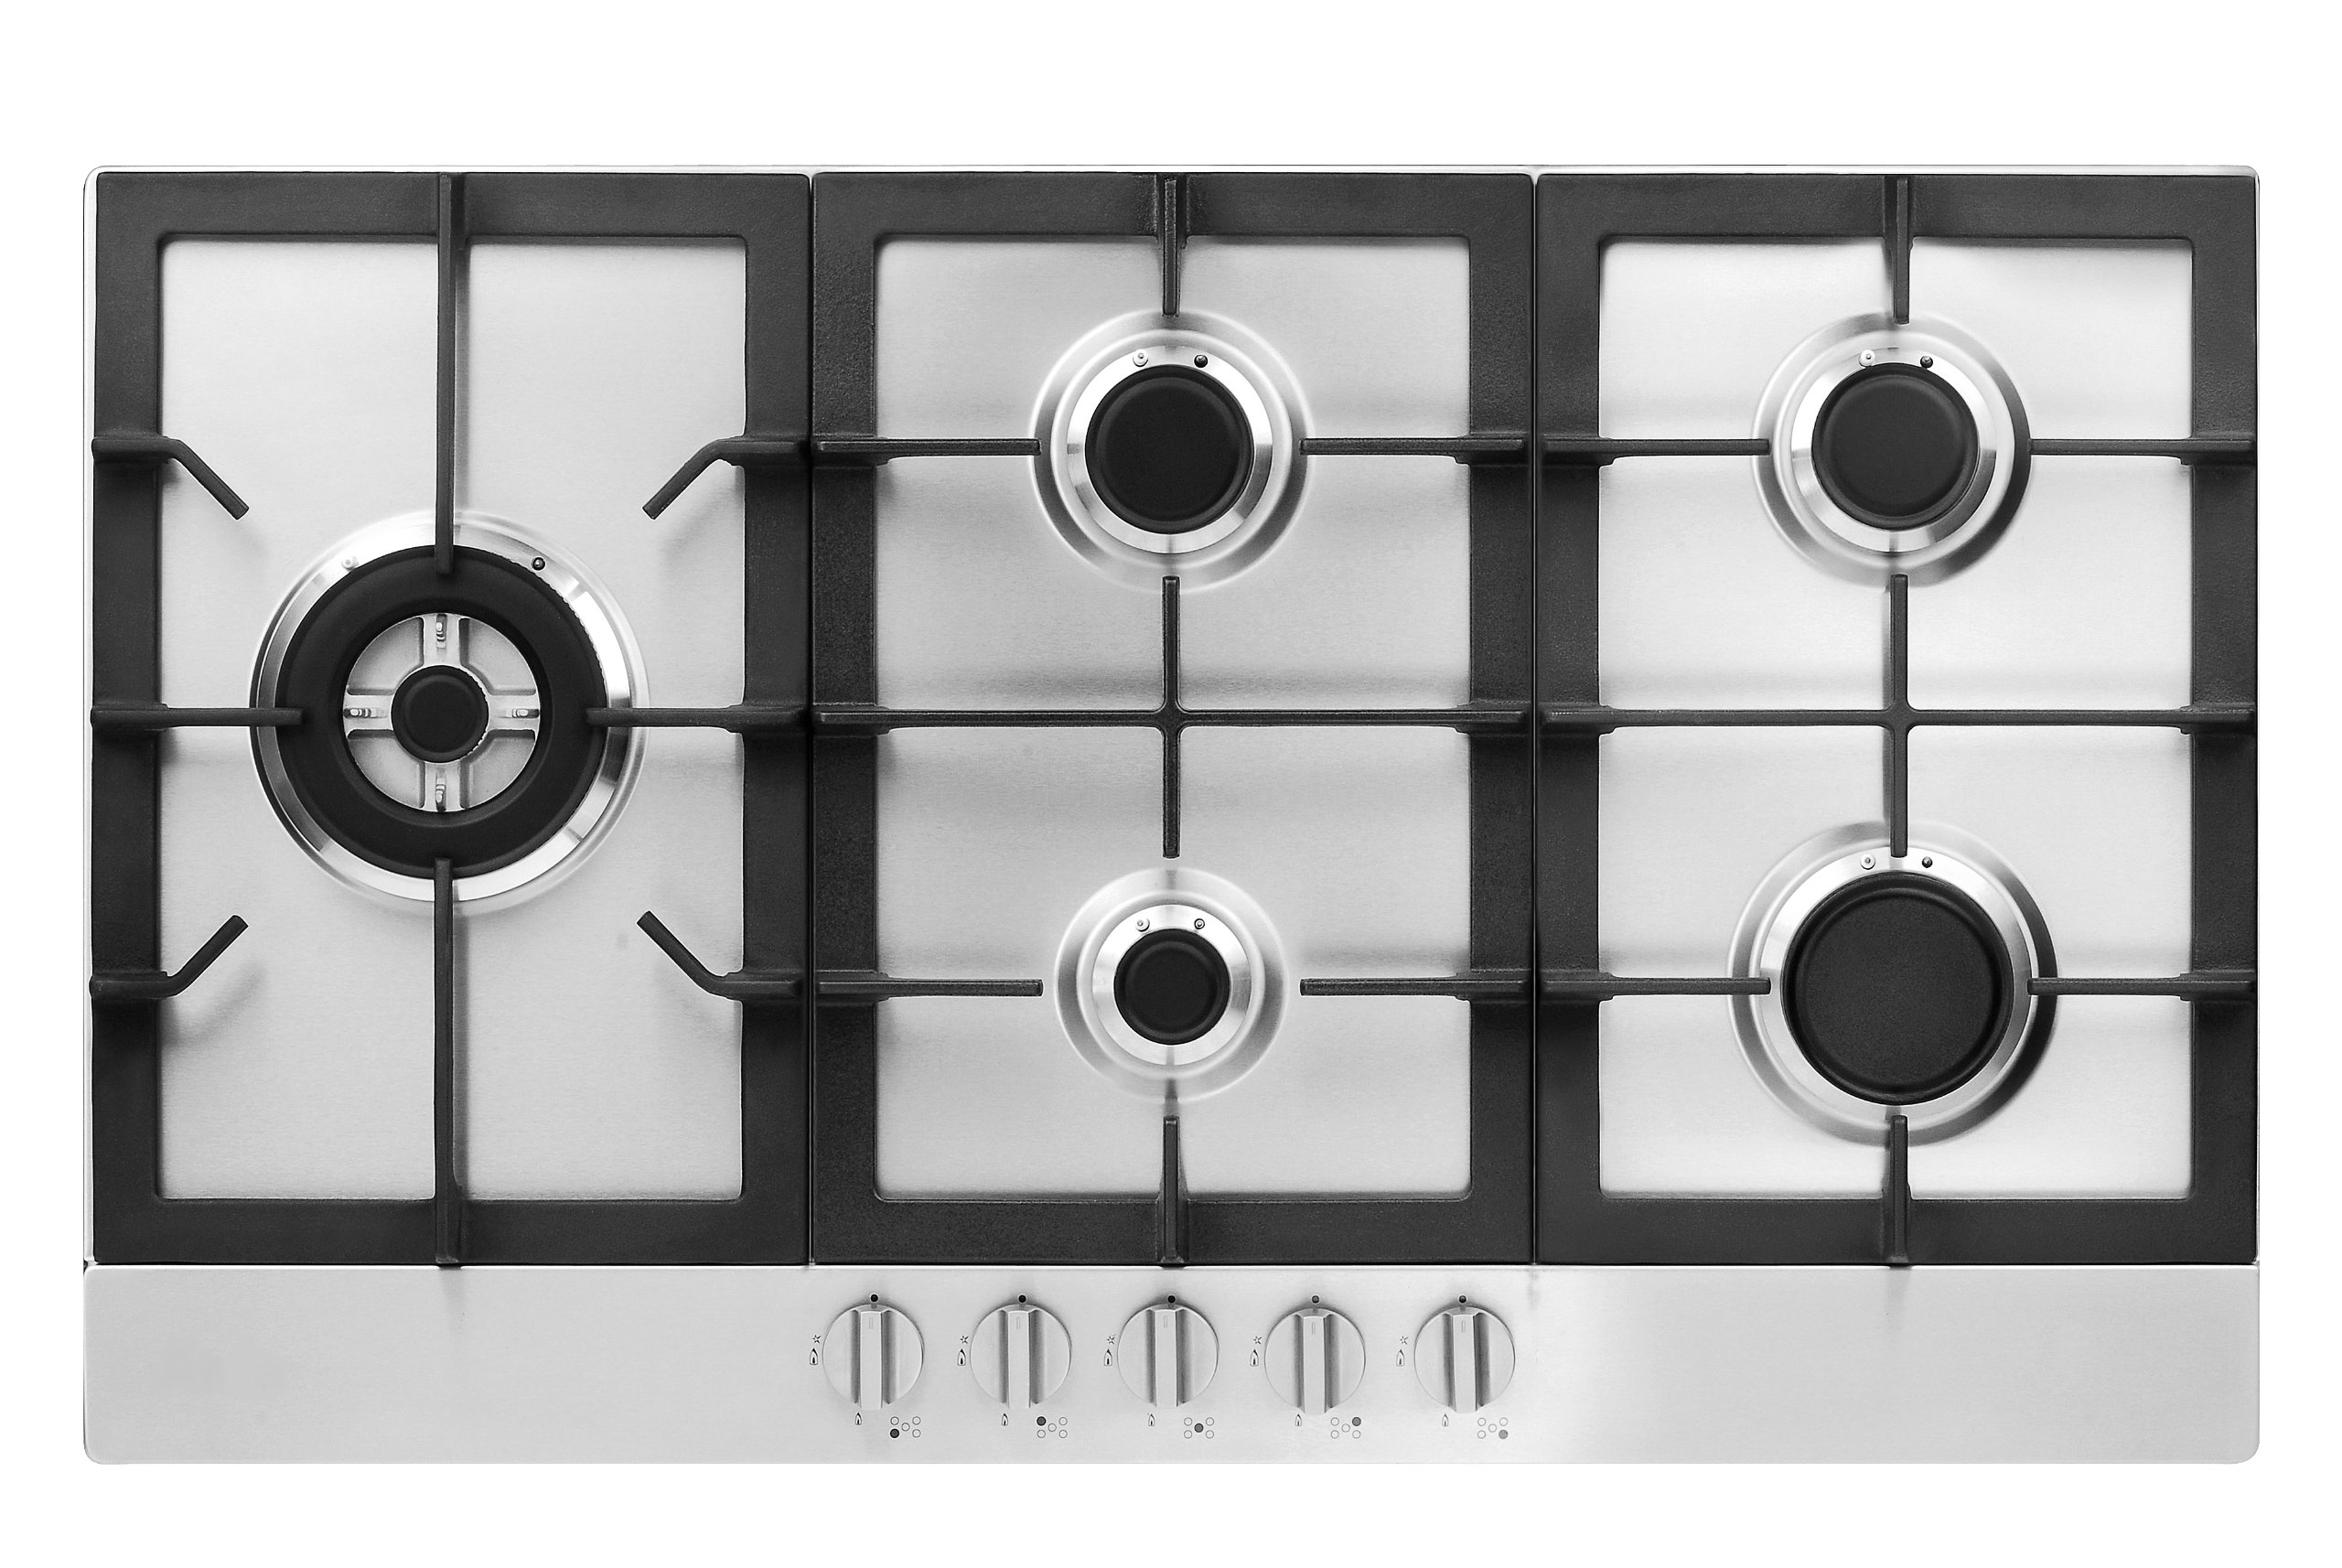 Fagor FA-850SLTX 5-Burner Gas Cooktop with Universal Ignition, 30-Inch, Stainless Steel